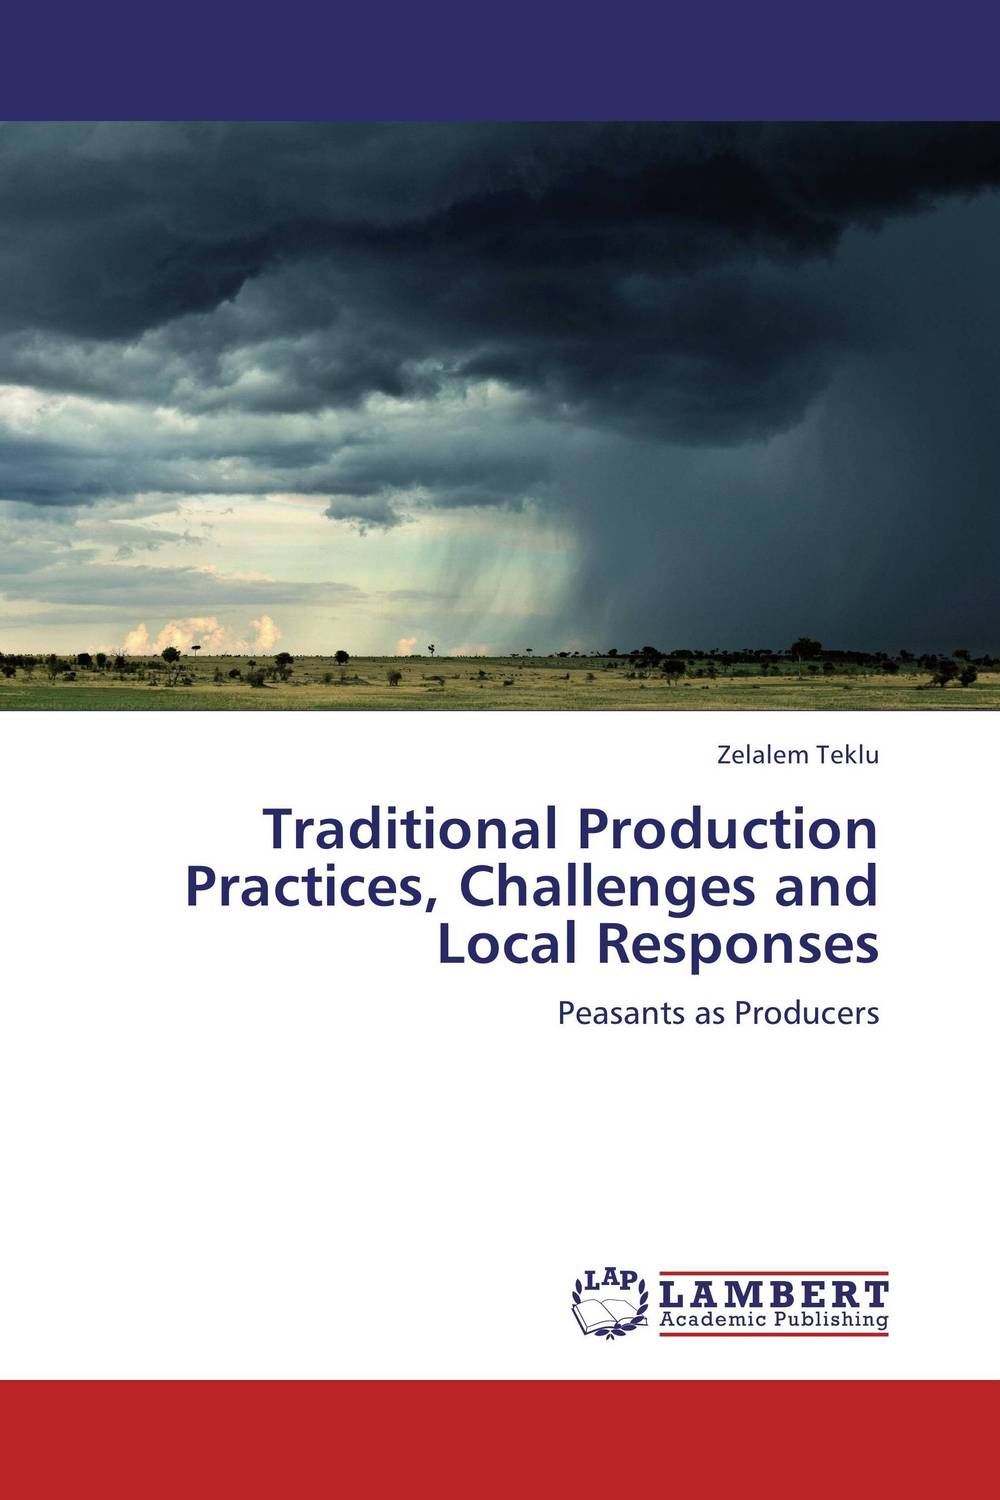 Traditional Production Practices, Challenges and Local Responses therapeutic practices in yoruba traditional religions